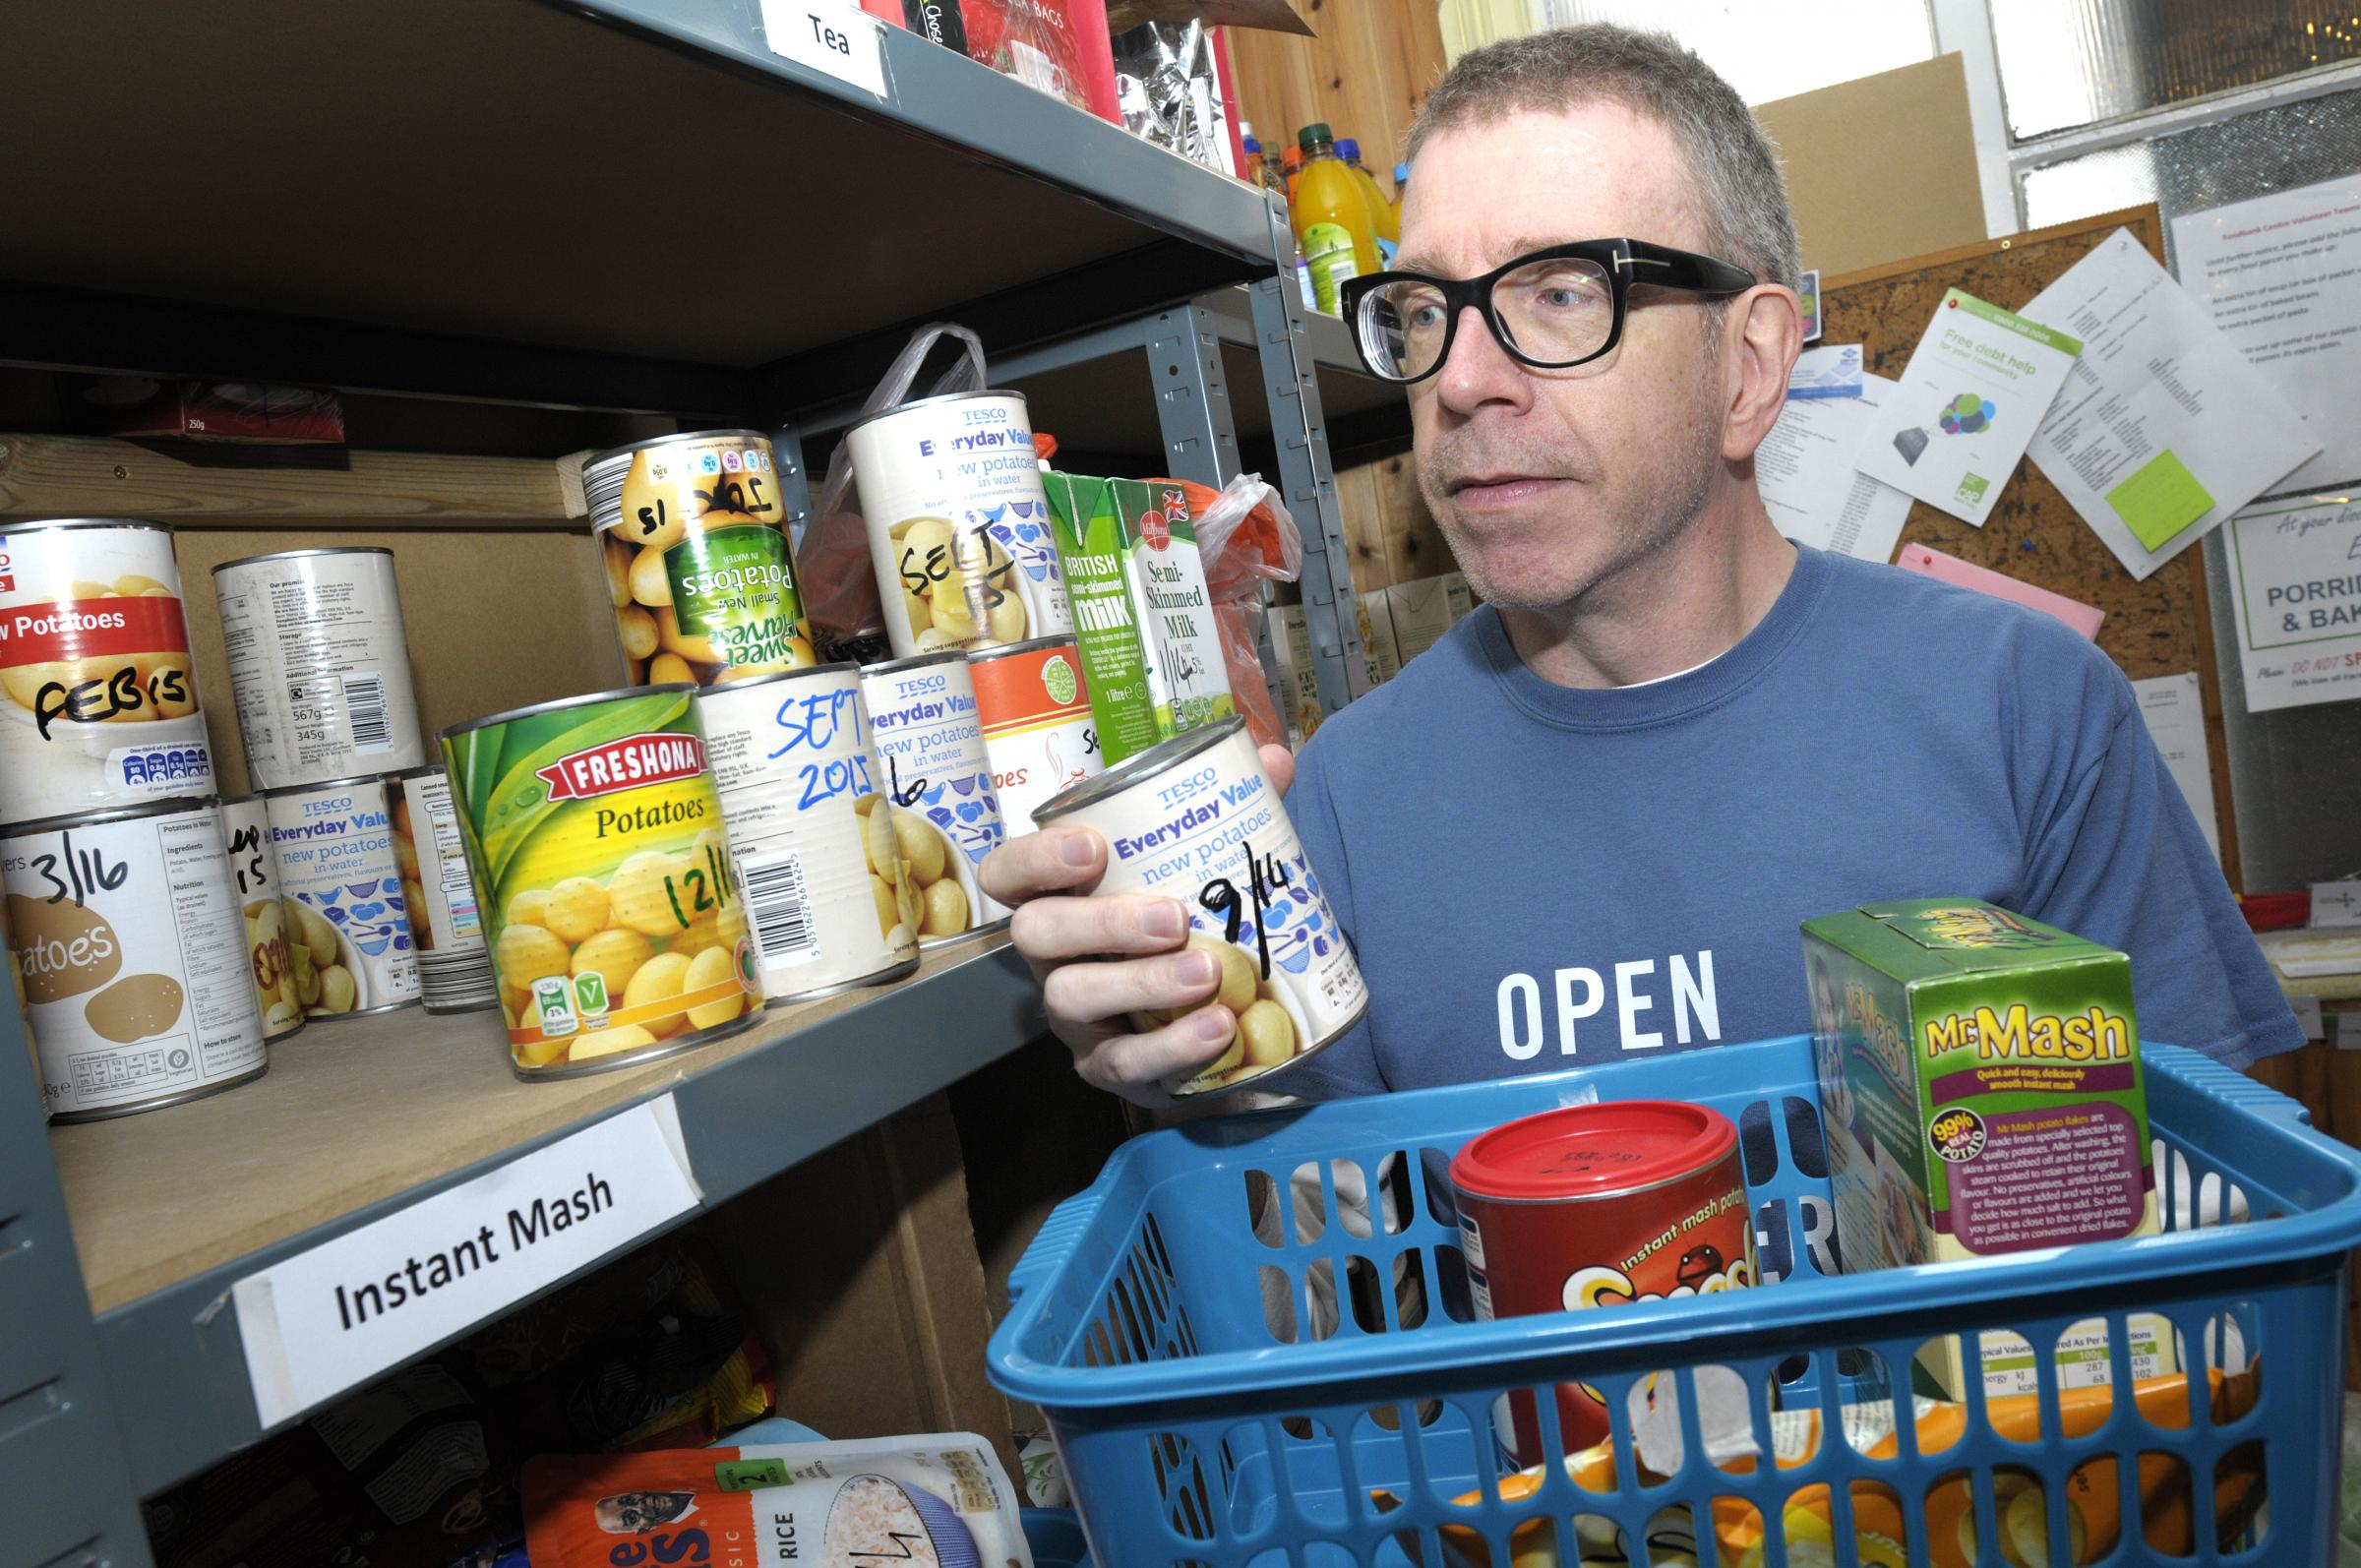 More than 4,000 people got help from Warrington Foodbank in past year